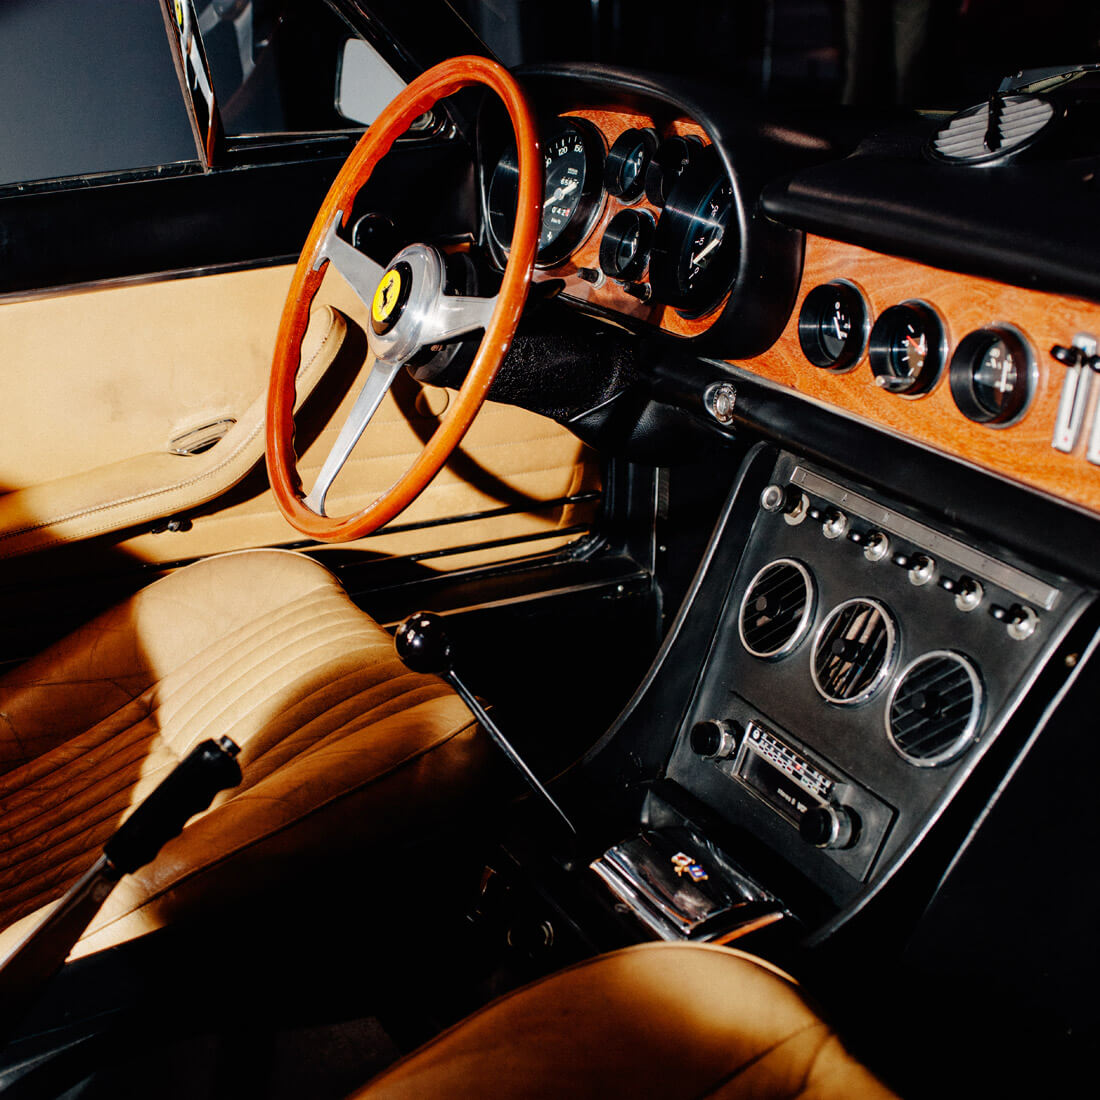 """""""I spent two days visiting auctions, parties, and auto exhibits, equally captivated by the cars and the ostentatious culture of wealth that surrounds them."""" — Jake Stangel"""